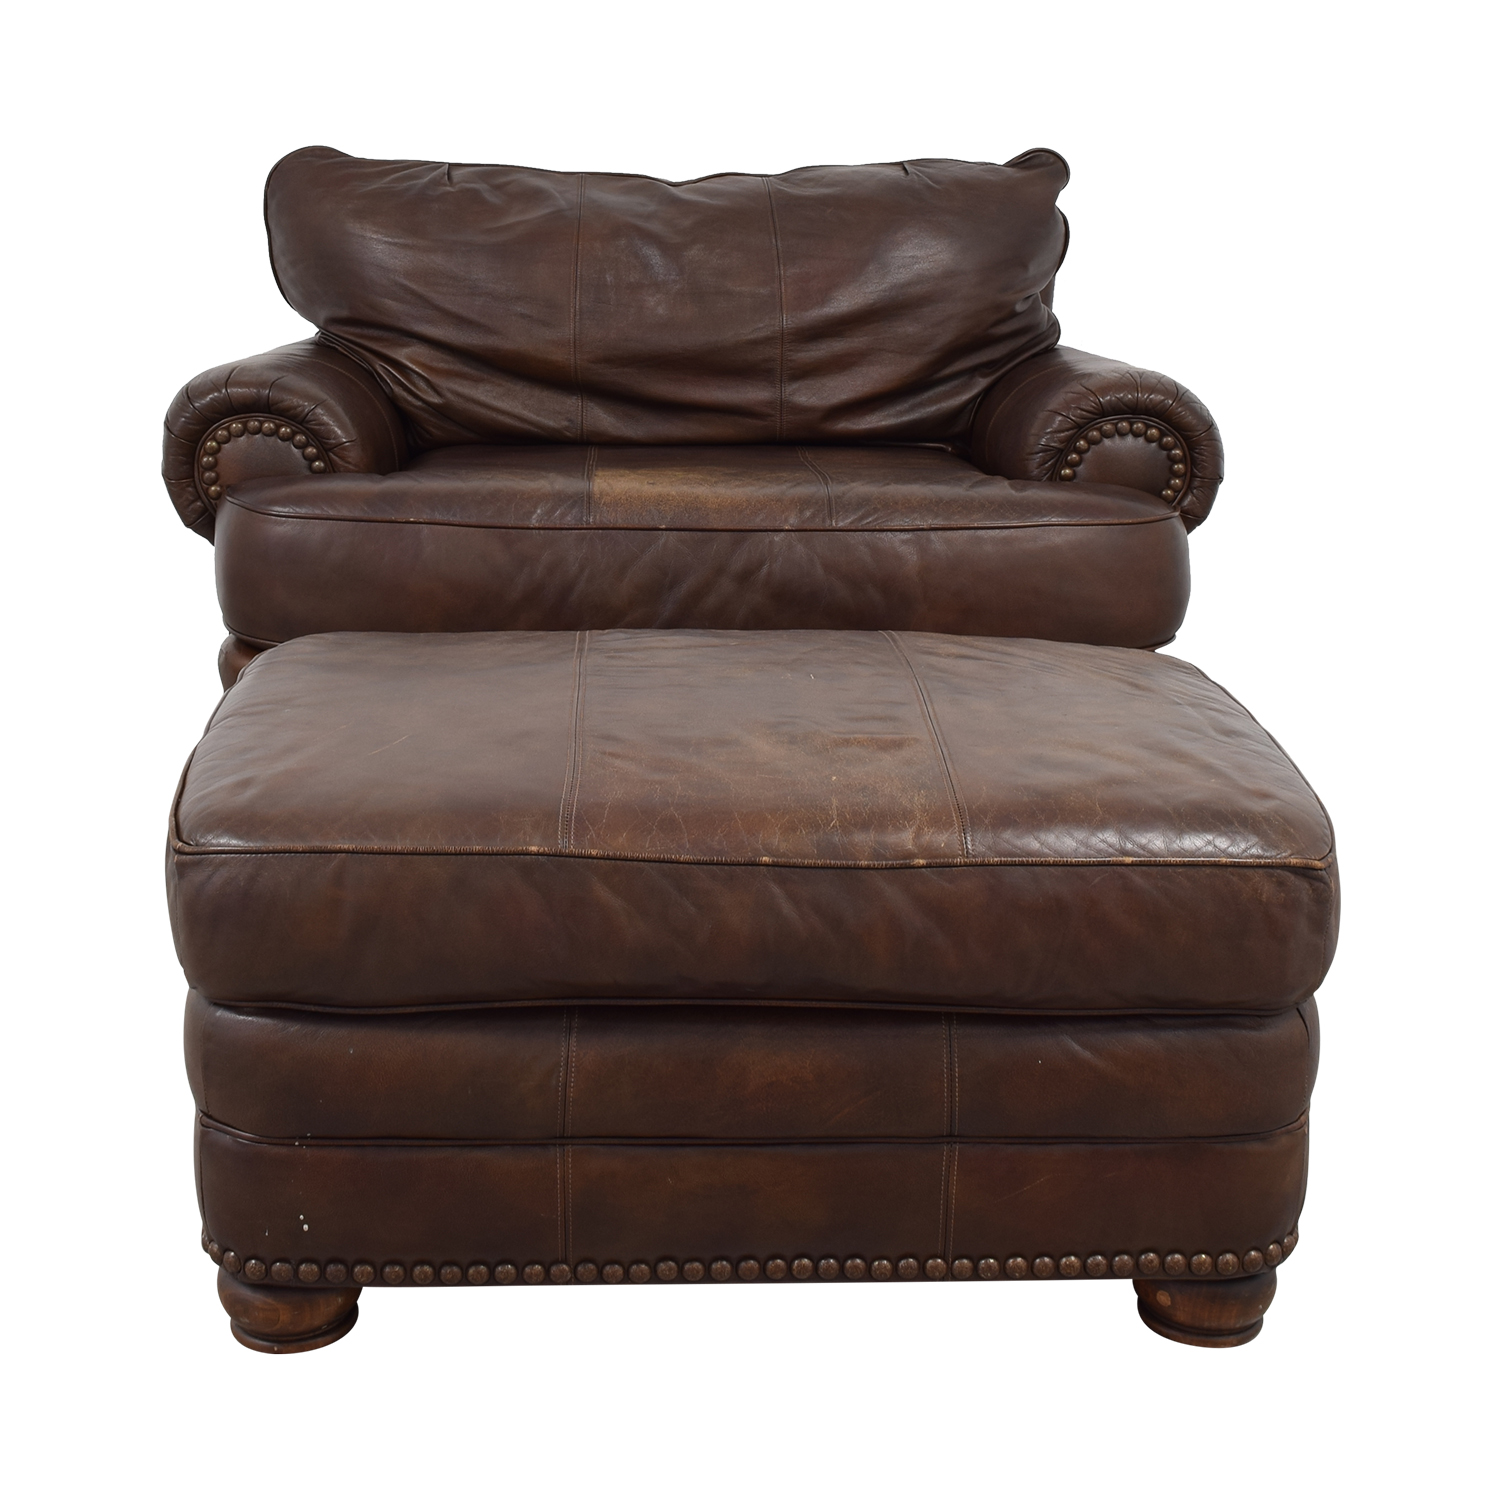 Discount Leather Chairs 68 Off Lane Furniture Lane Furniture Brown Leather Chair And Ottoman Chairs